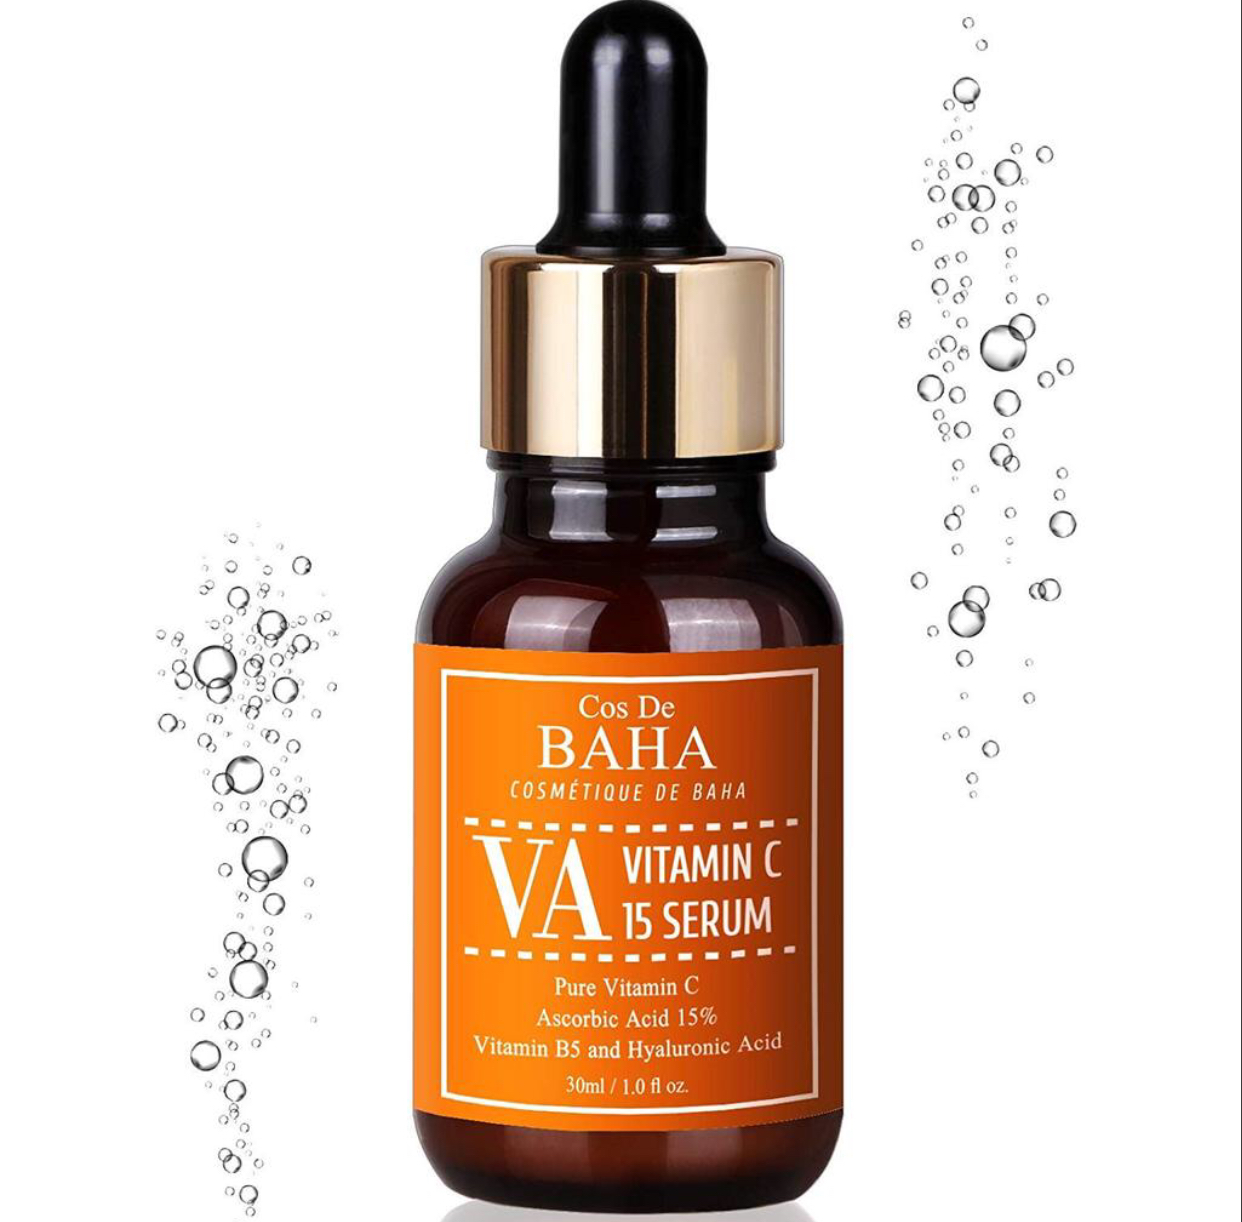 Cos De BAHA Vitamin C Serum